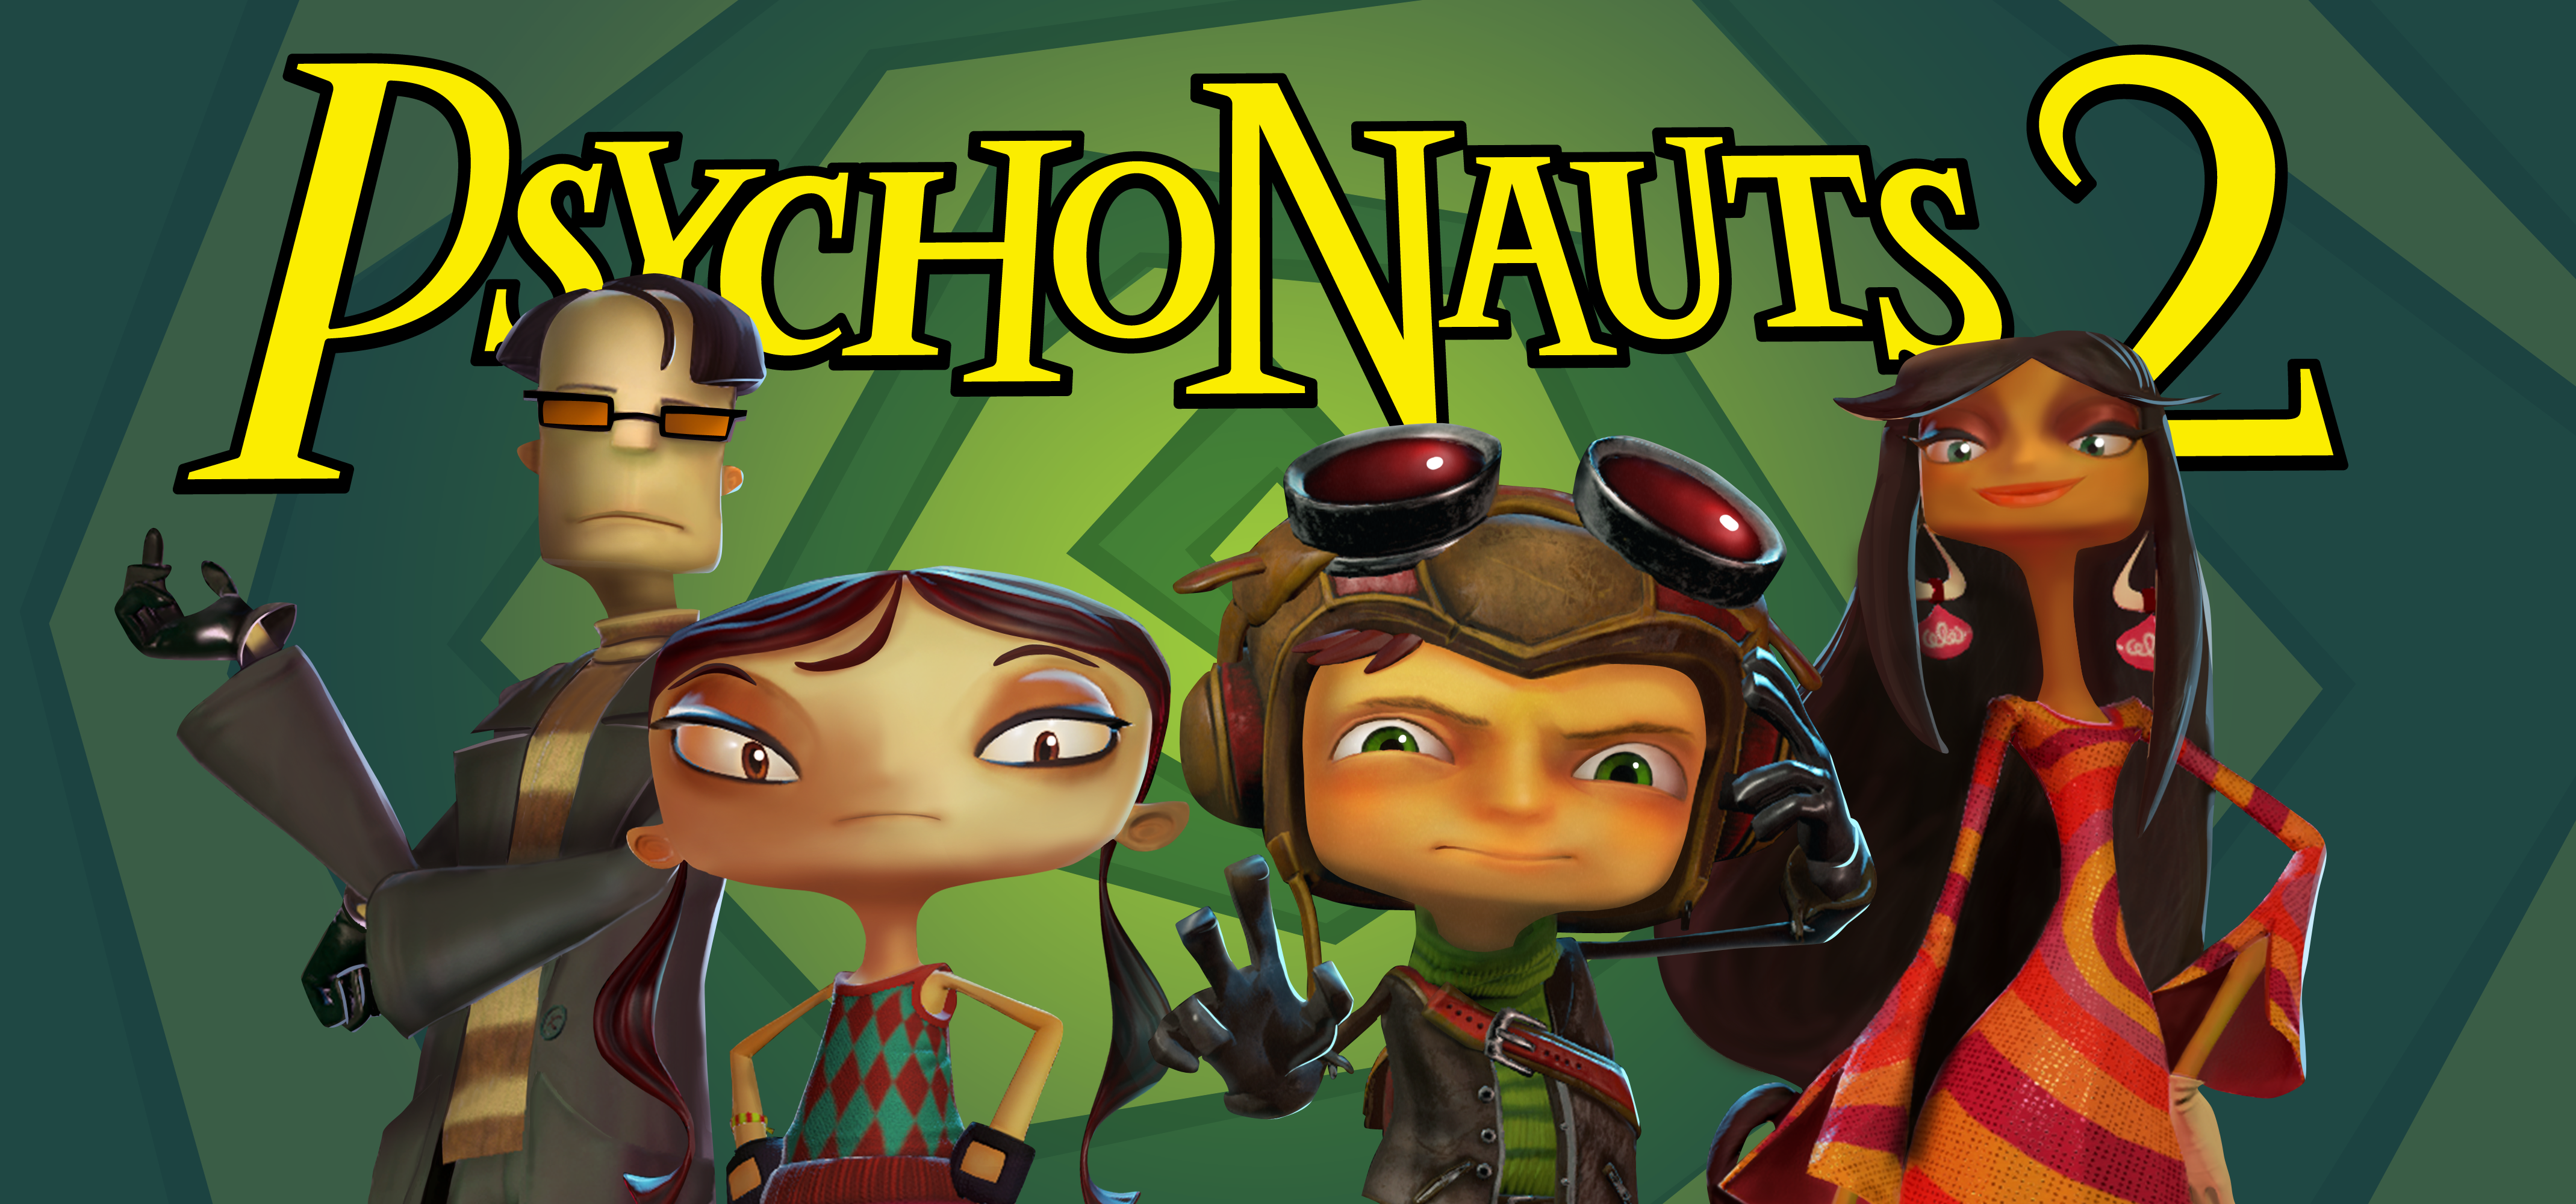 Psychonauts 2 Wallpapers Images Photos Pictures Backgrounds 4278x2000